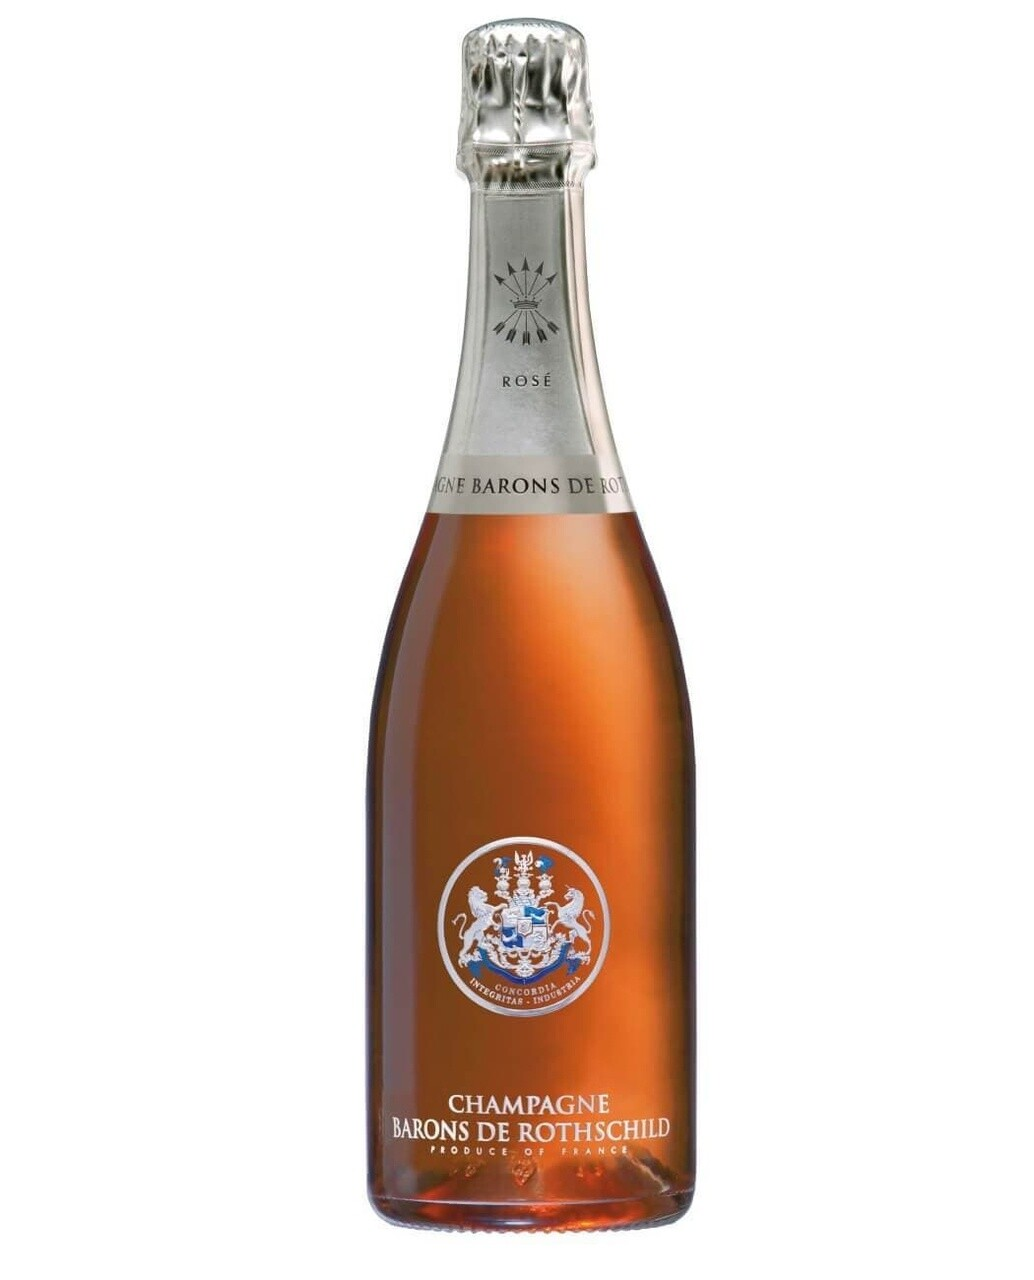 Sampanie Barons de Rothschild Rose